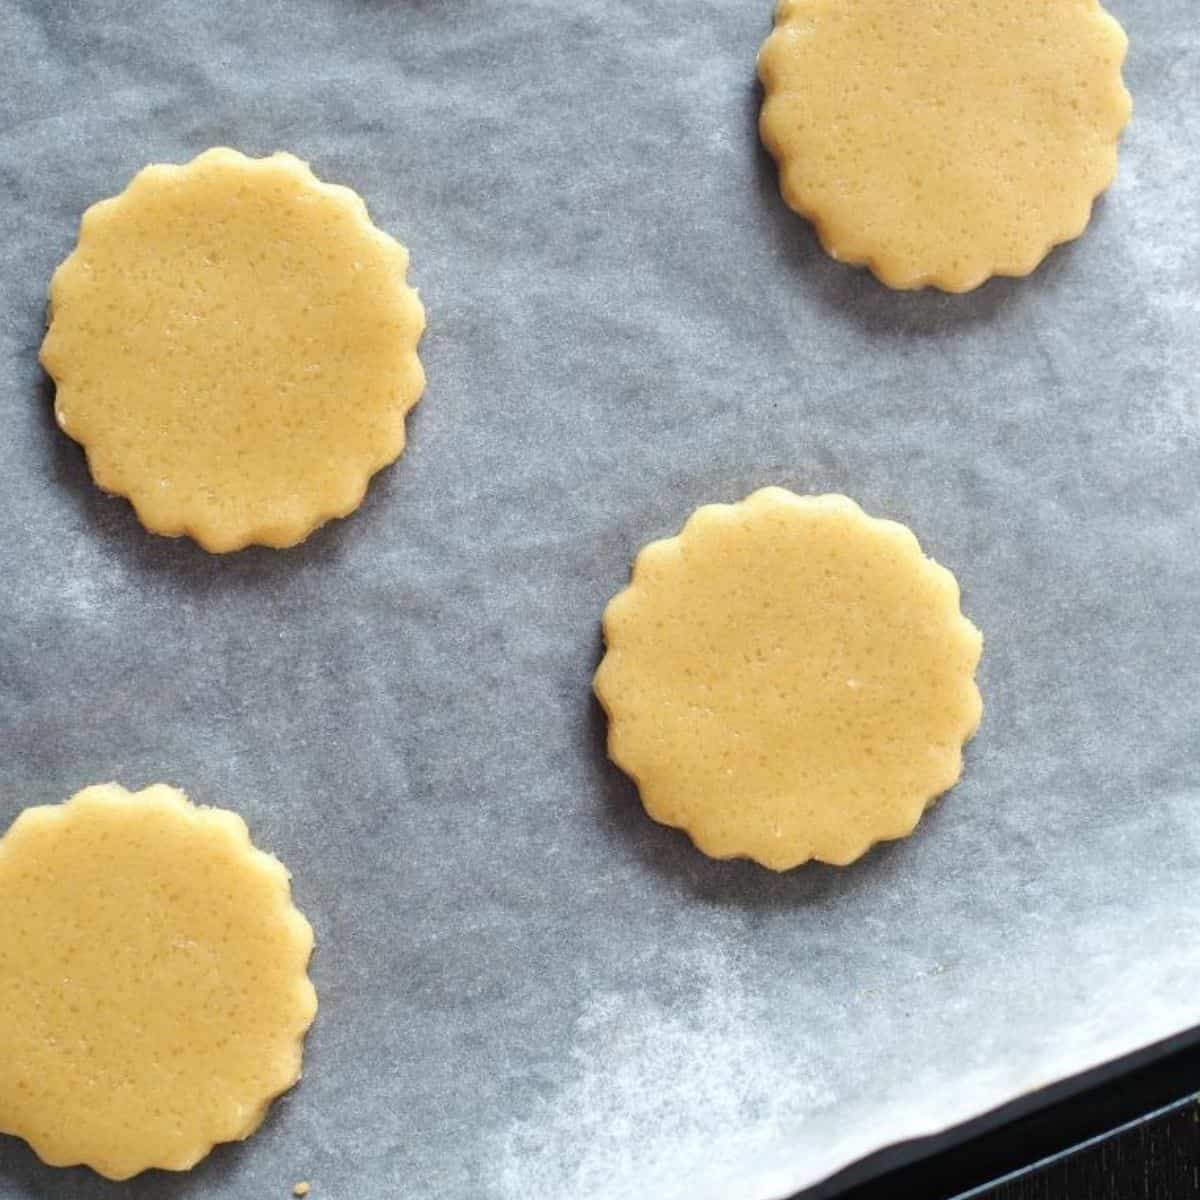 Round scalloped cookies on a parchment lined tray